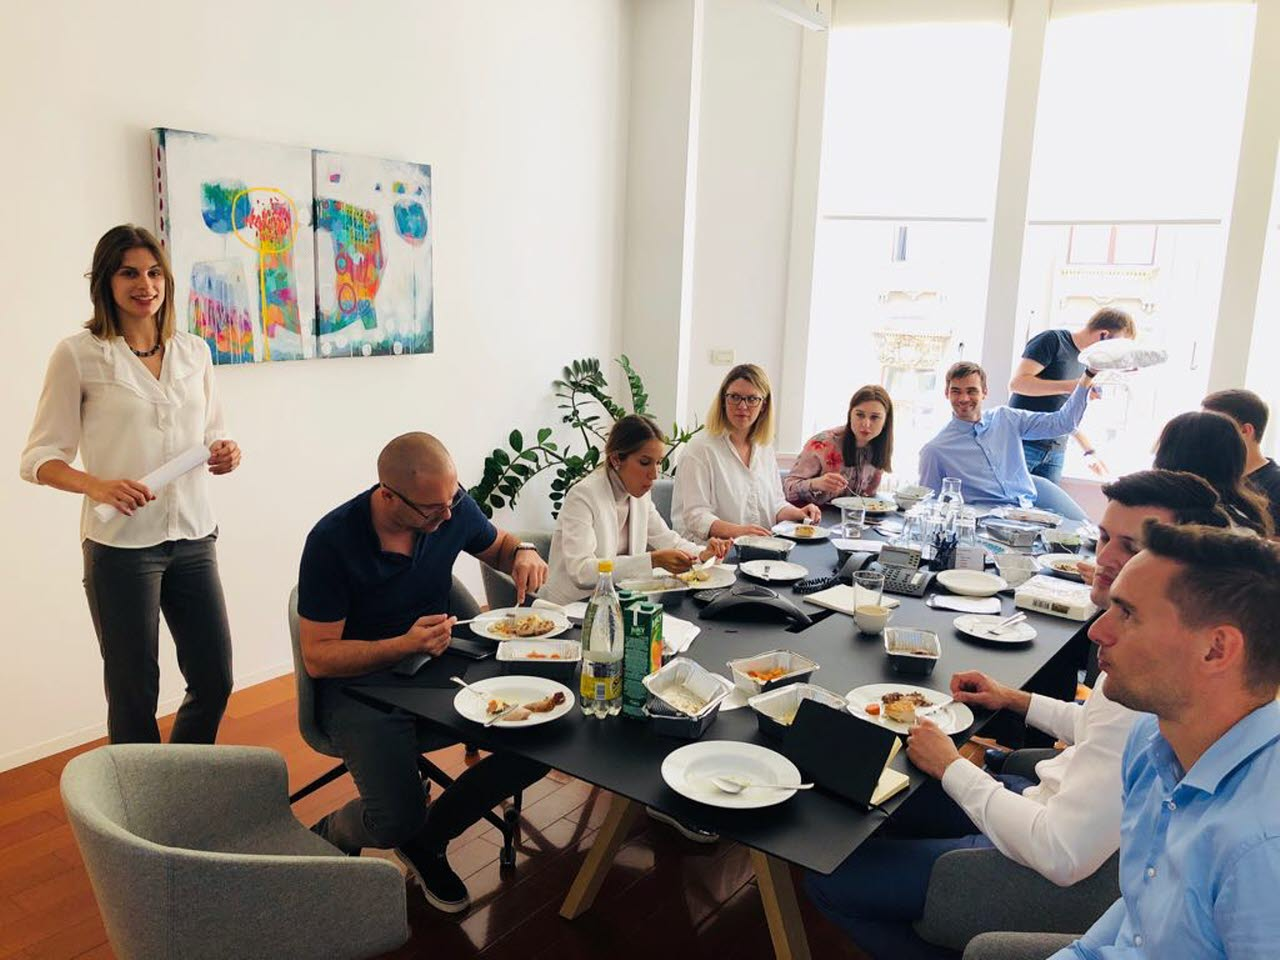 Lunch and learn - Klara and her team